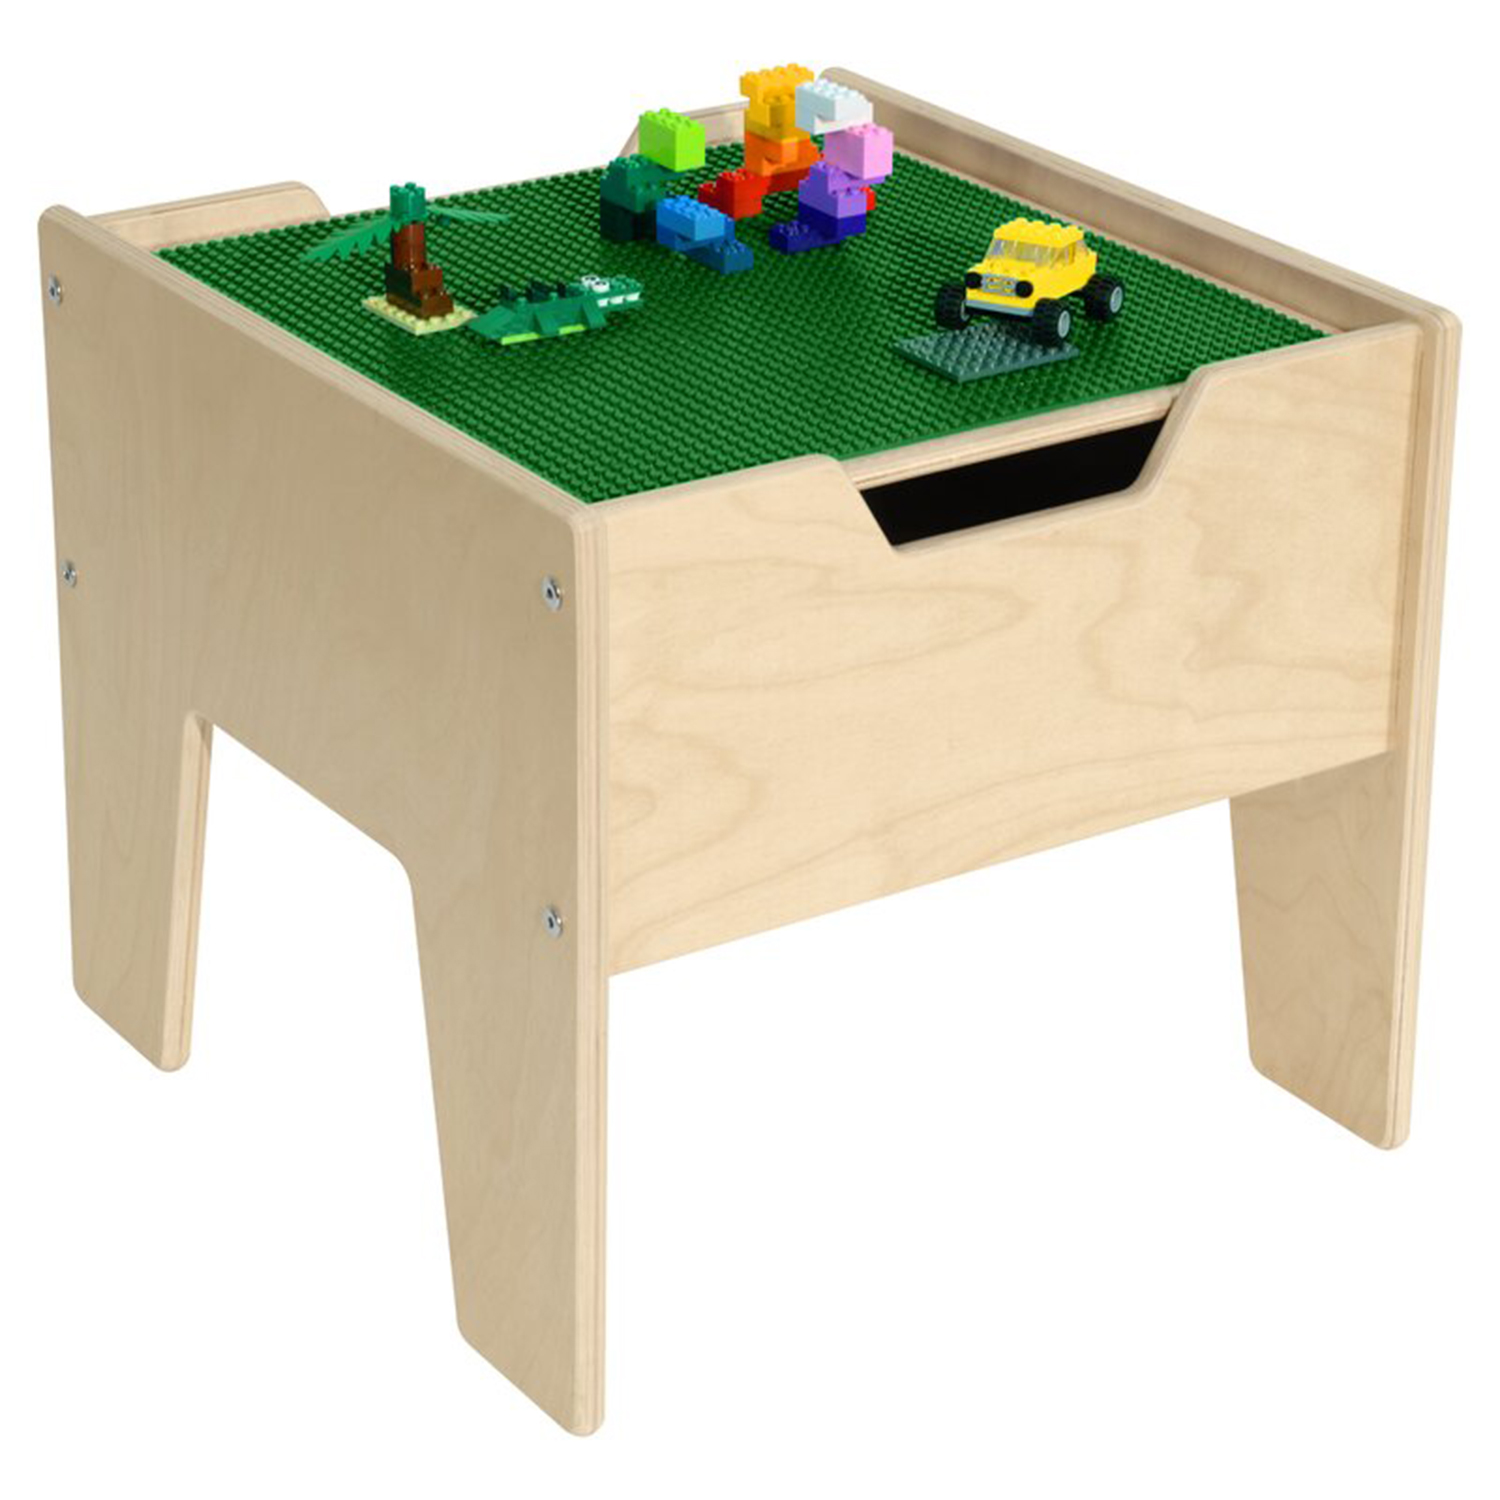 Best Lego Table for Toddler Play: Wood Designs Contender Kids Square Interactive Table